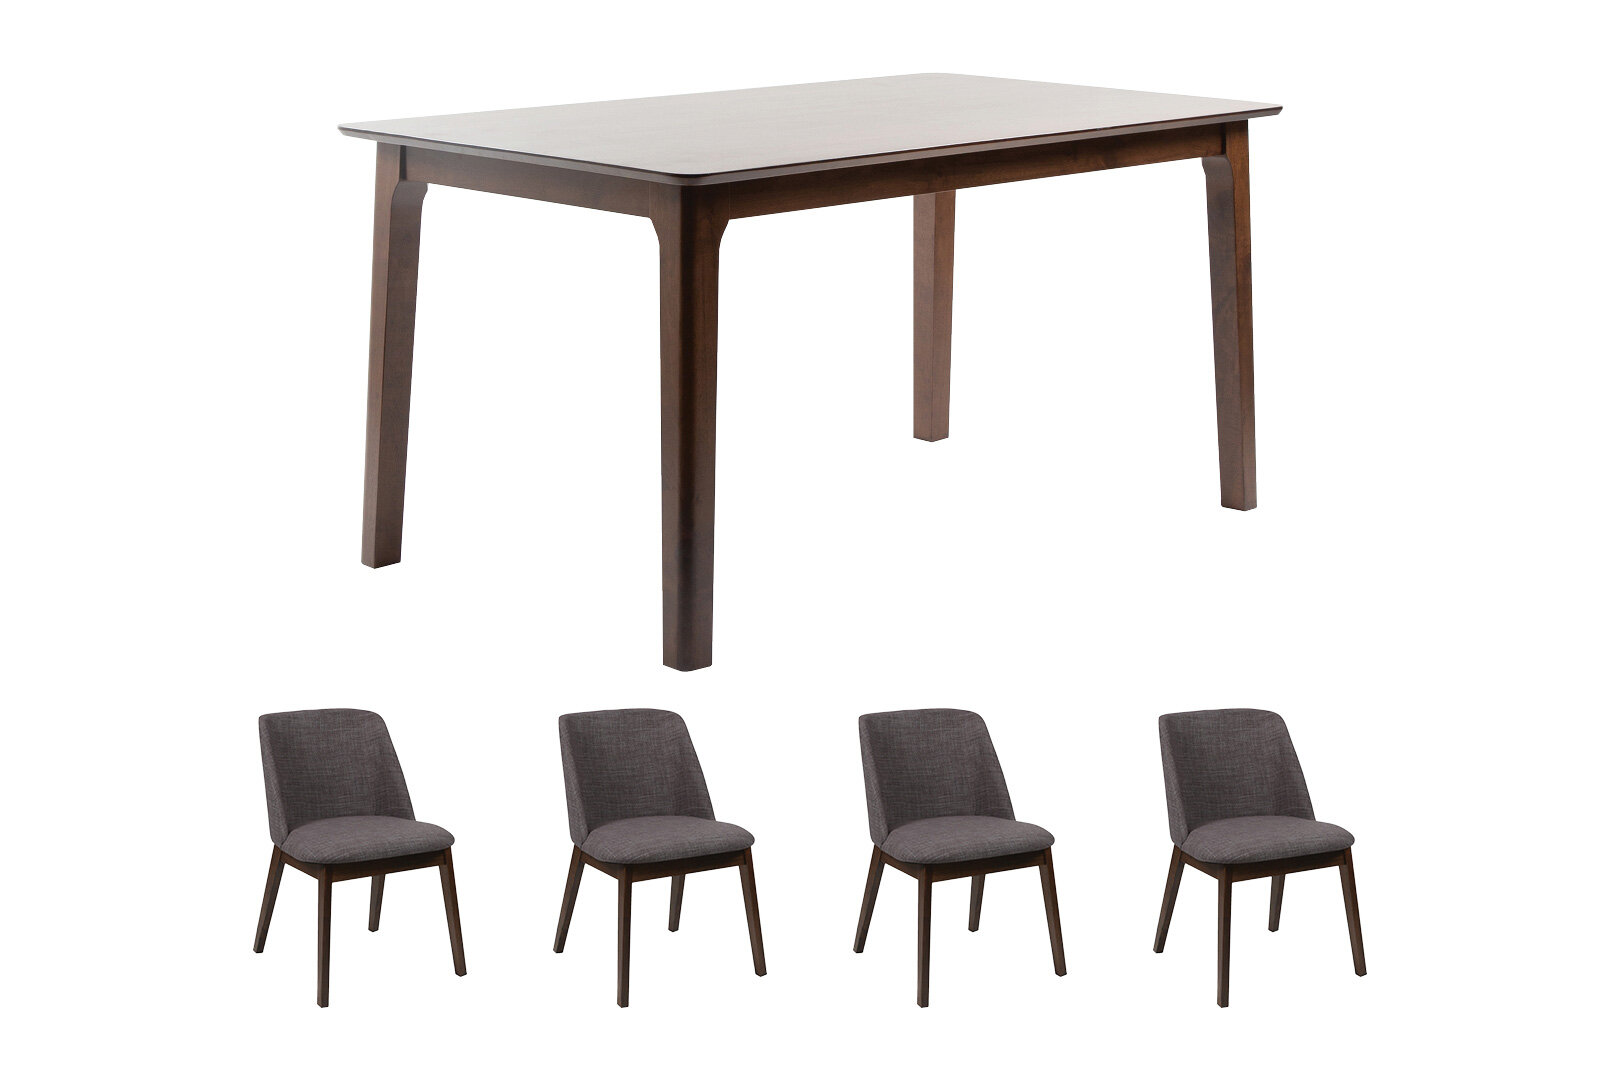 6 Seater Wooden Dining Table Set With 4